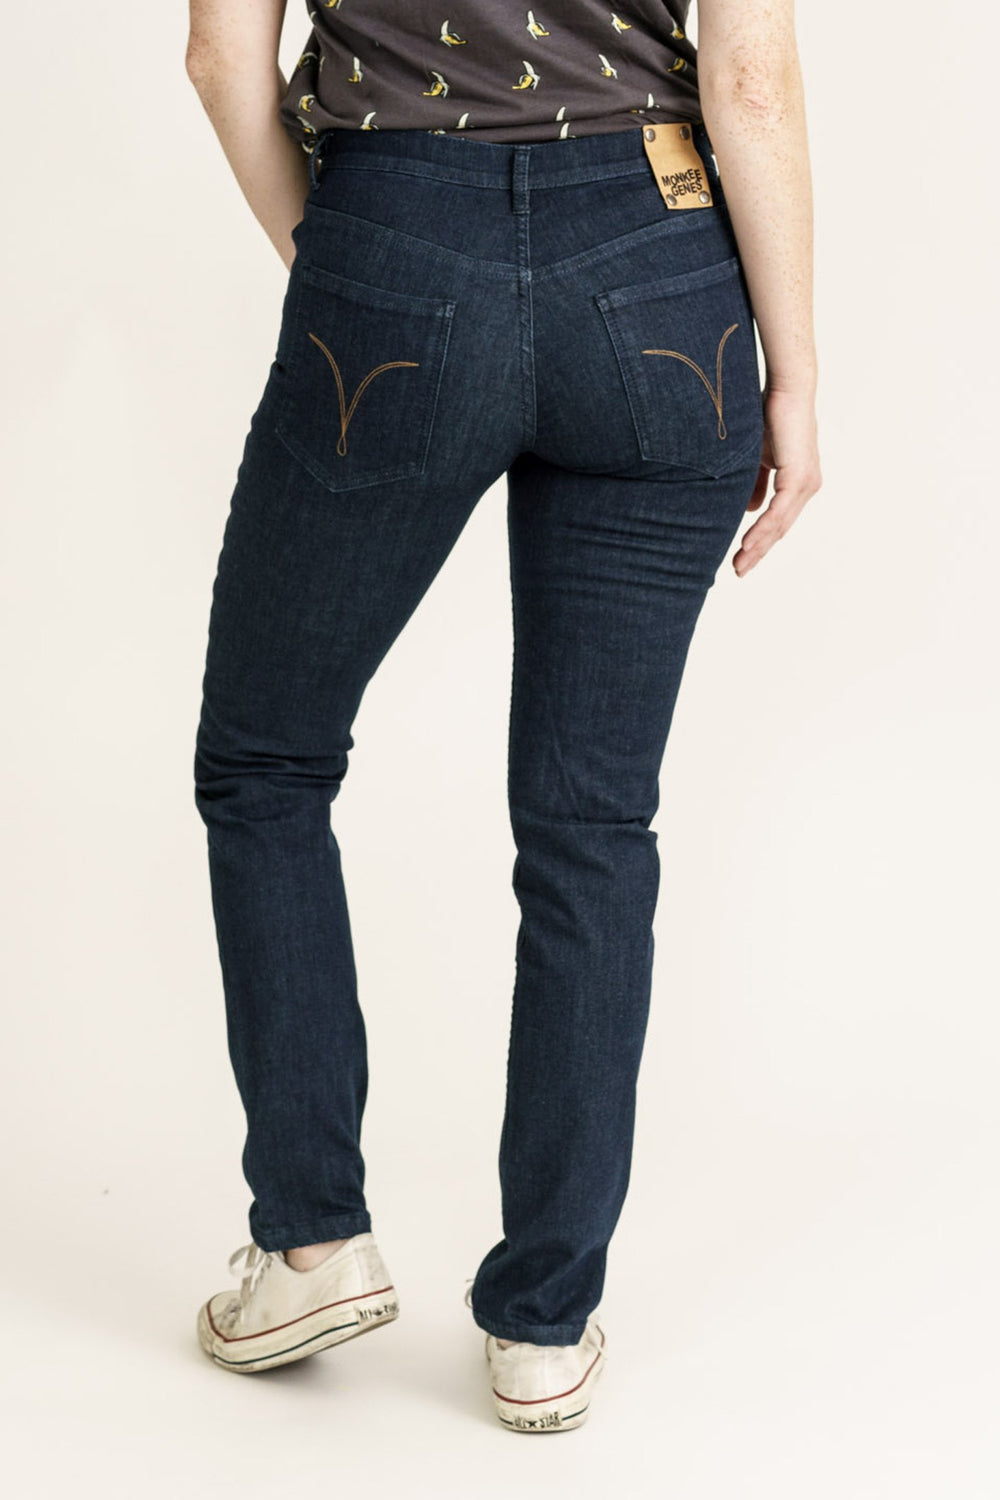 CLASSIC SKINNY // Organic Flex Classic Skinny Jeans in Blue Pilot Pure - Monkee Genes Organic Jeans Denim - Organic Flex Women's Jeans Monkee Genes Official  Monkee Genes Official